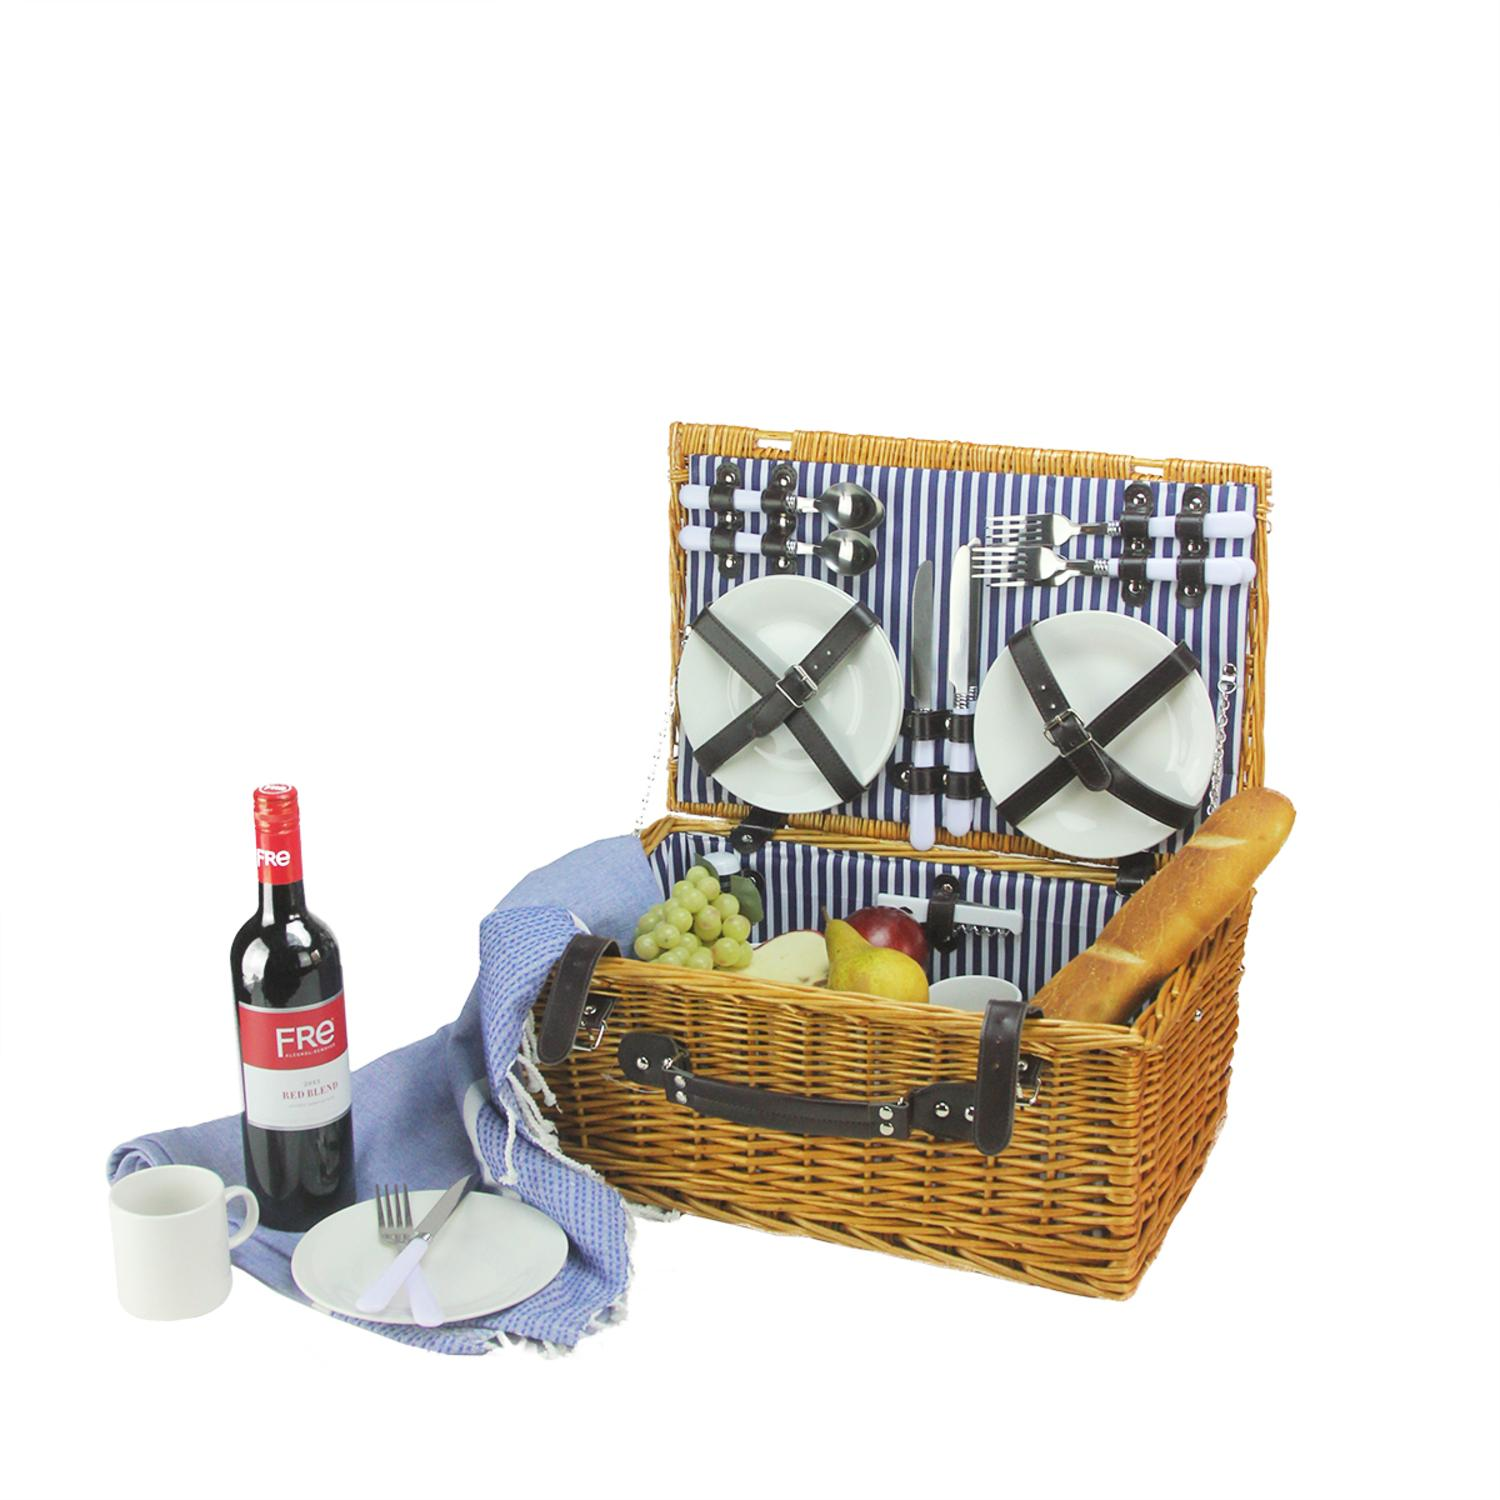 4-Person Hand Woven Honey Willow Picnic Basket Set with Accessories